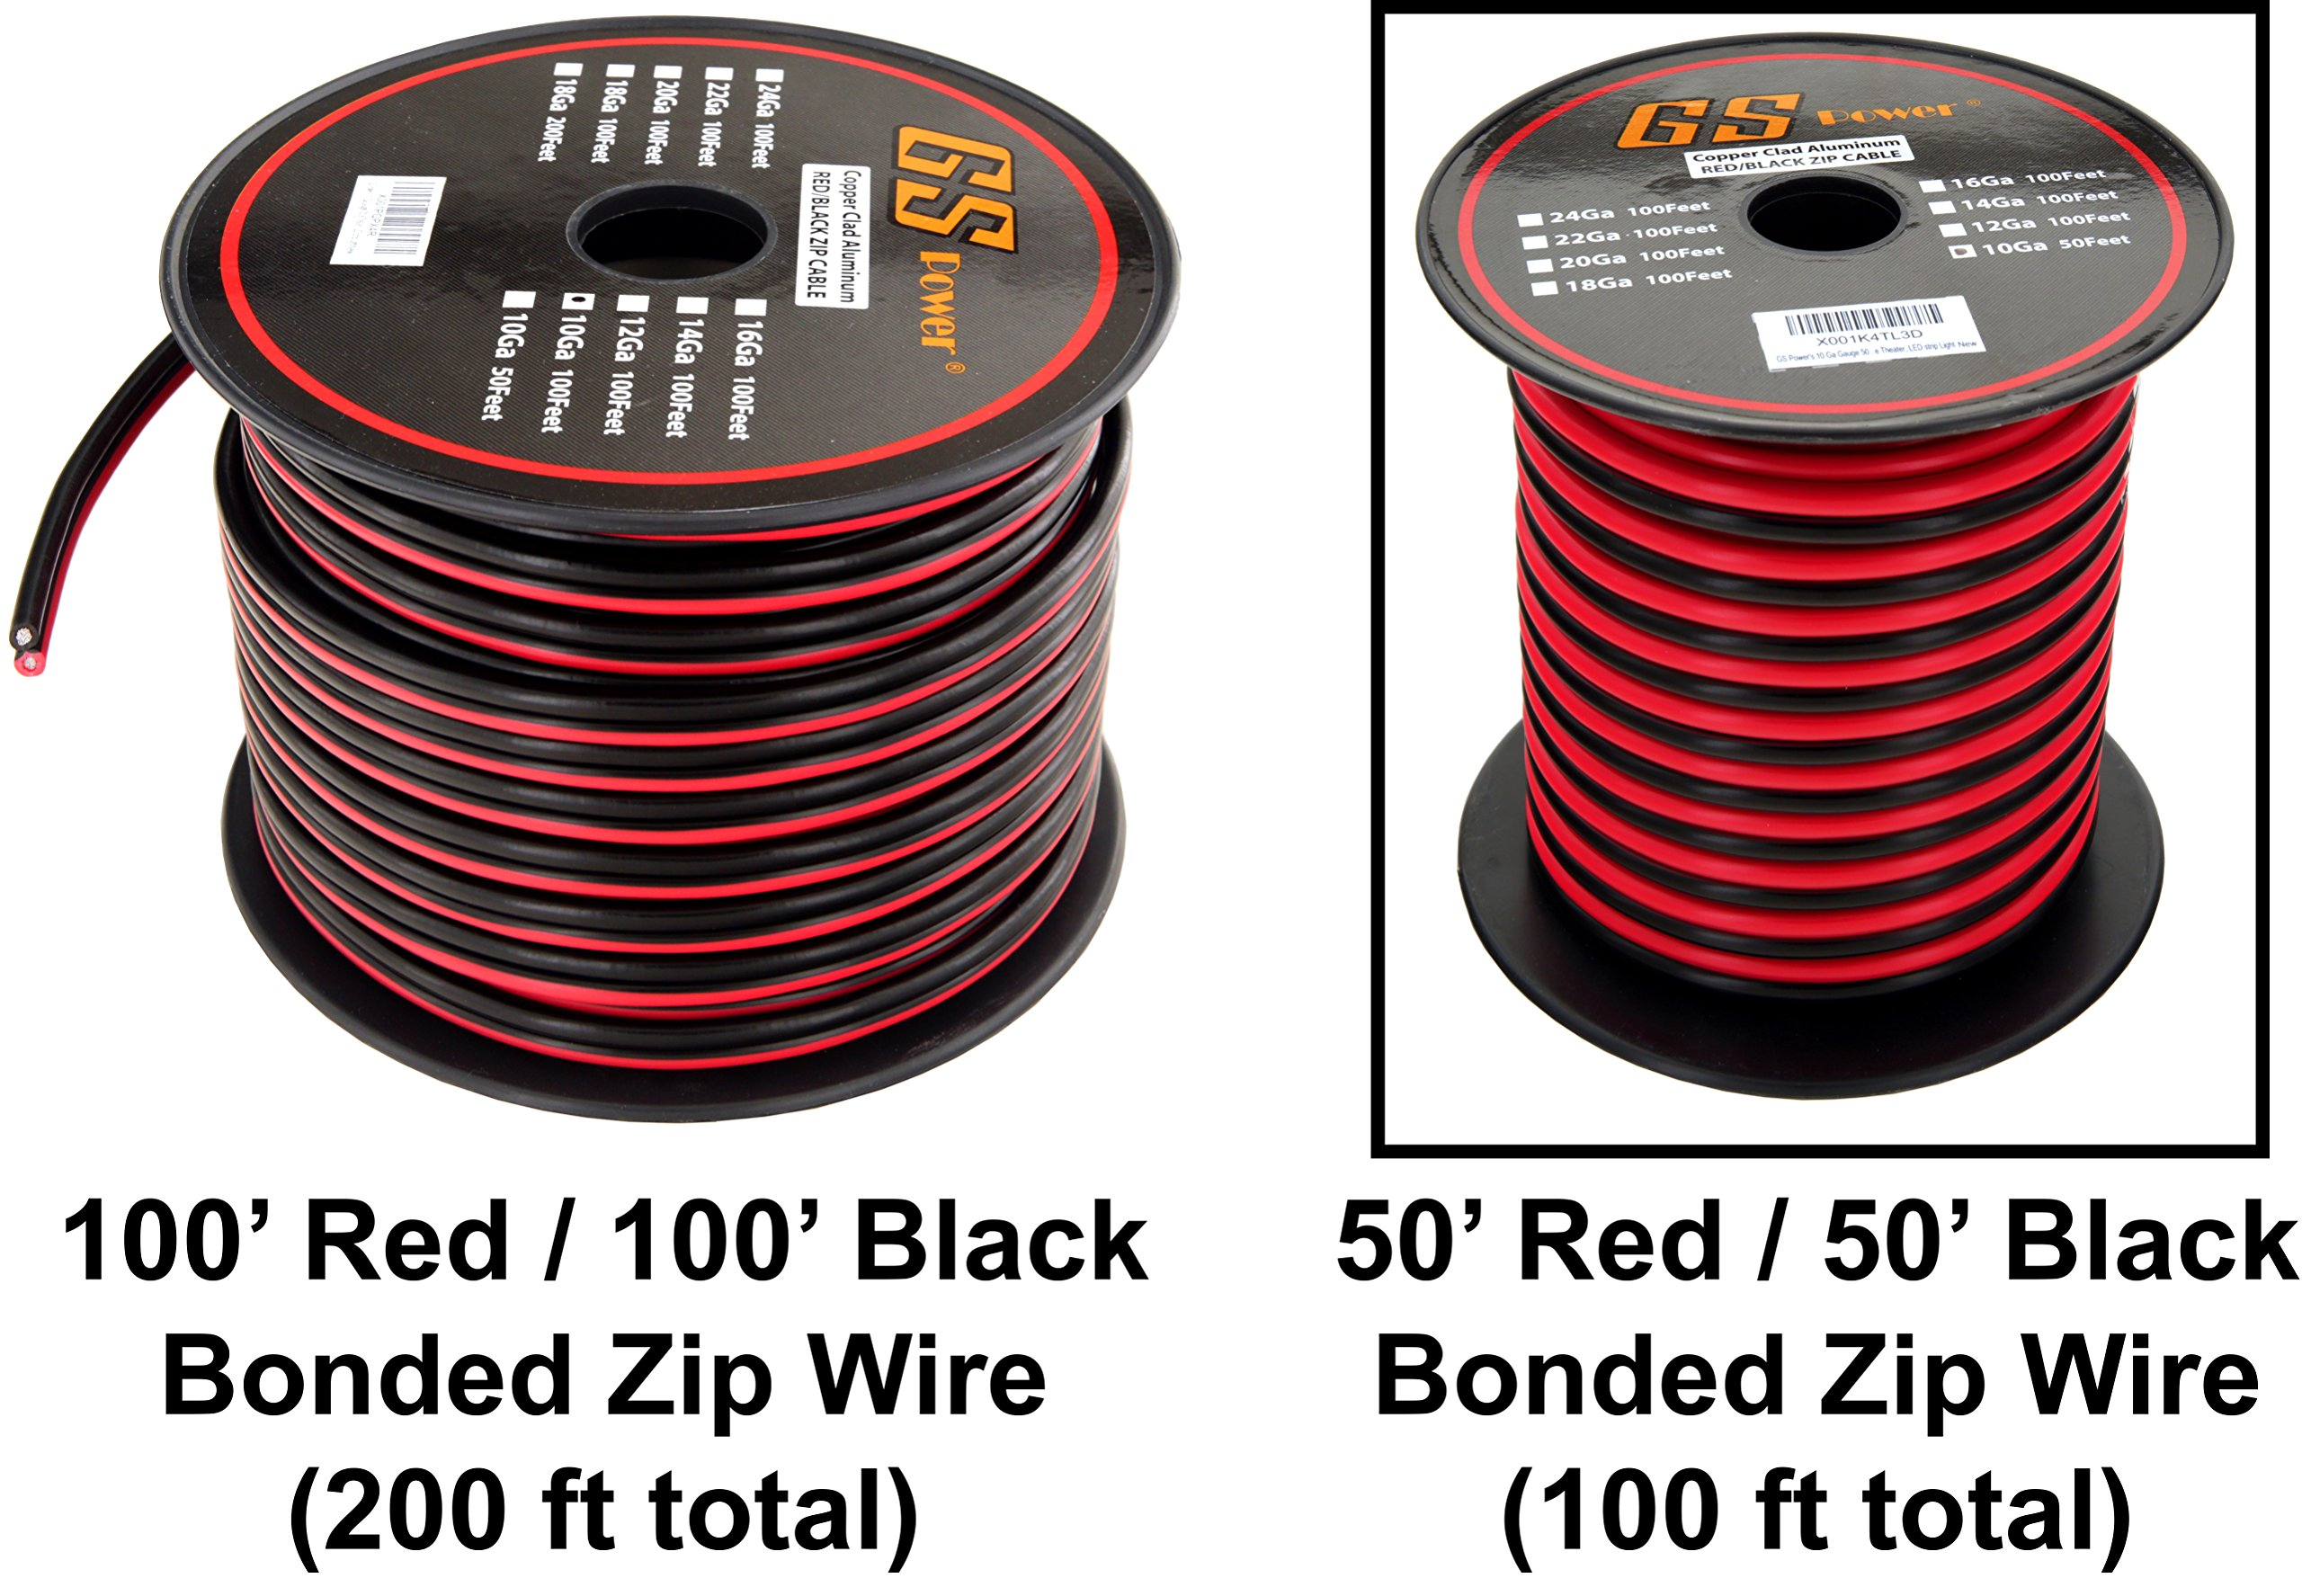 10 Gauge Ga 50 Feet CCA Copper Clad Aluminum Red Black Bonded Zip Cord Cable for Car Audio Speaker Home Theater LED Light Amplifier Remote Auto Relay Trailer Harness Power Ground Model Train Wiring by GS Power